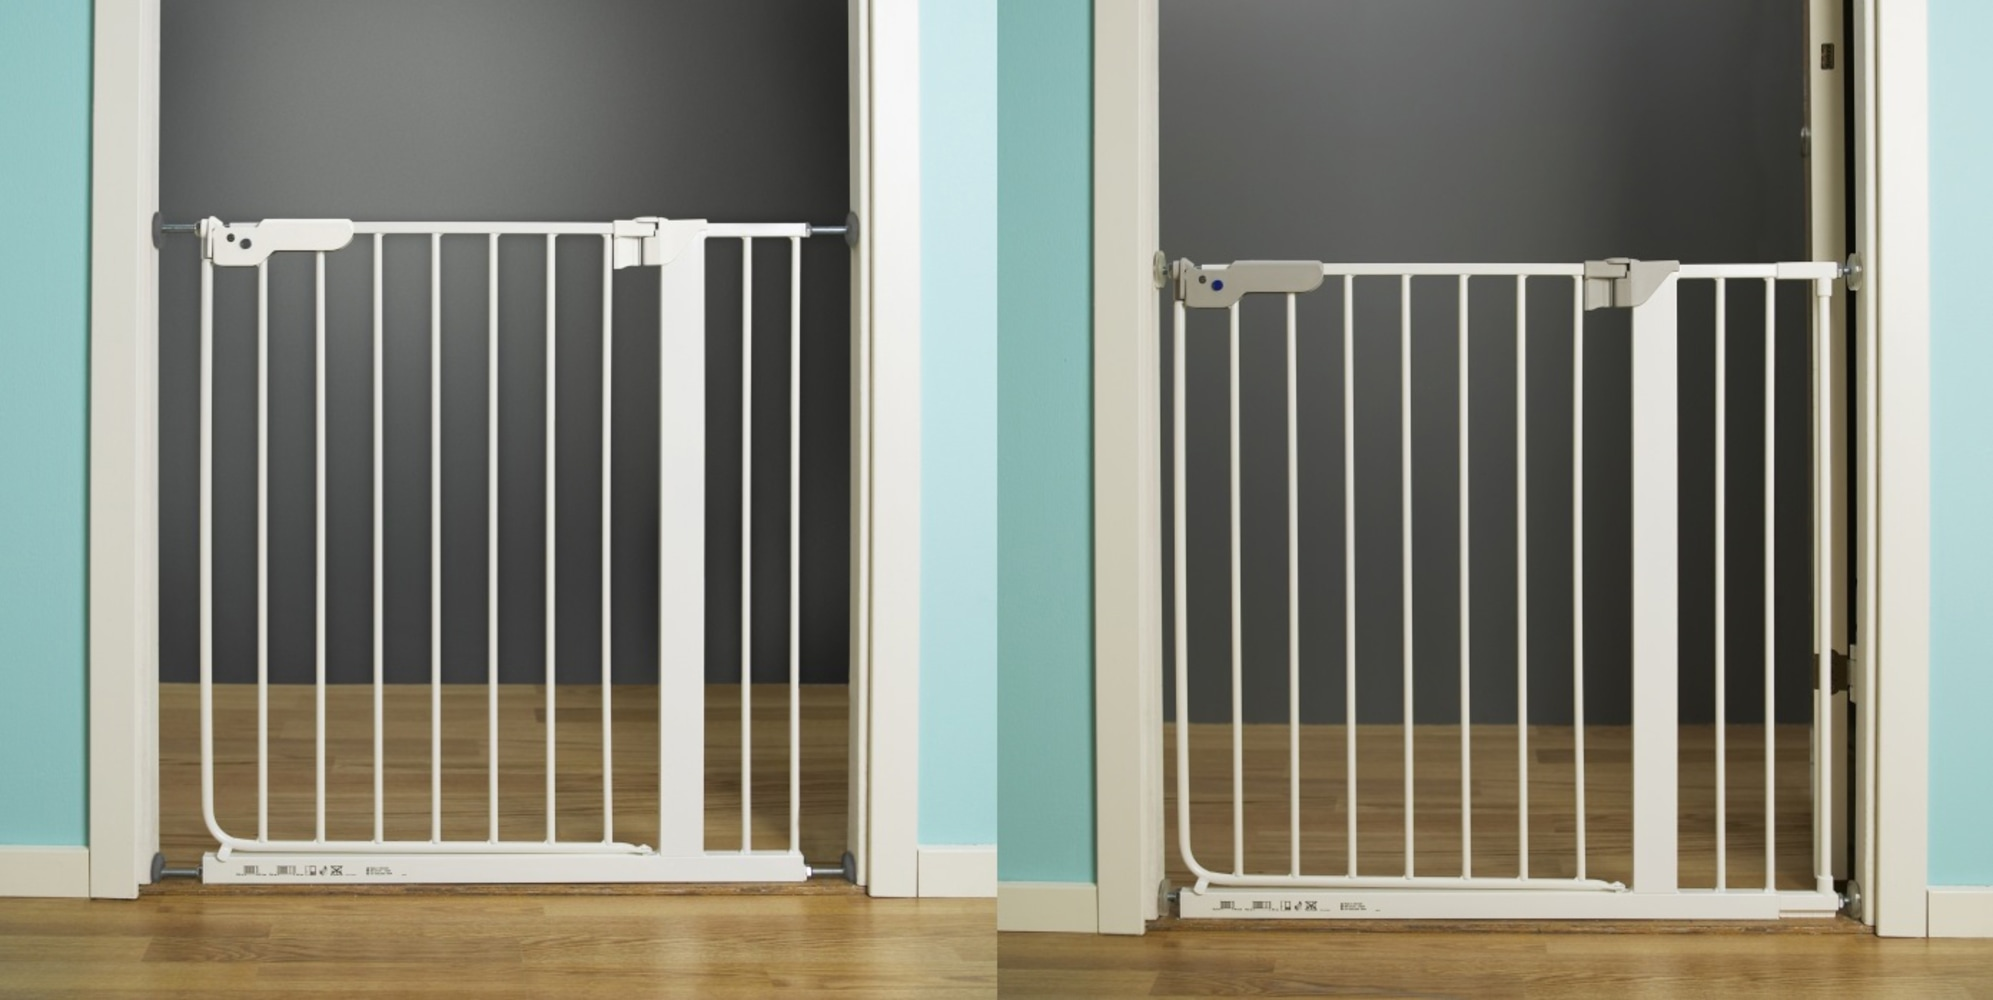 Ikea Recalls Safety Gates For Fear Of Causing Injury To